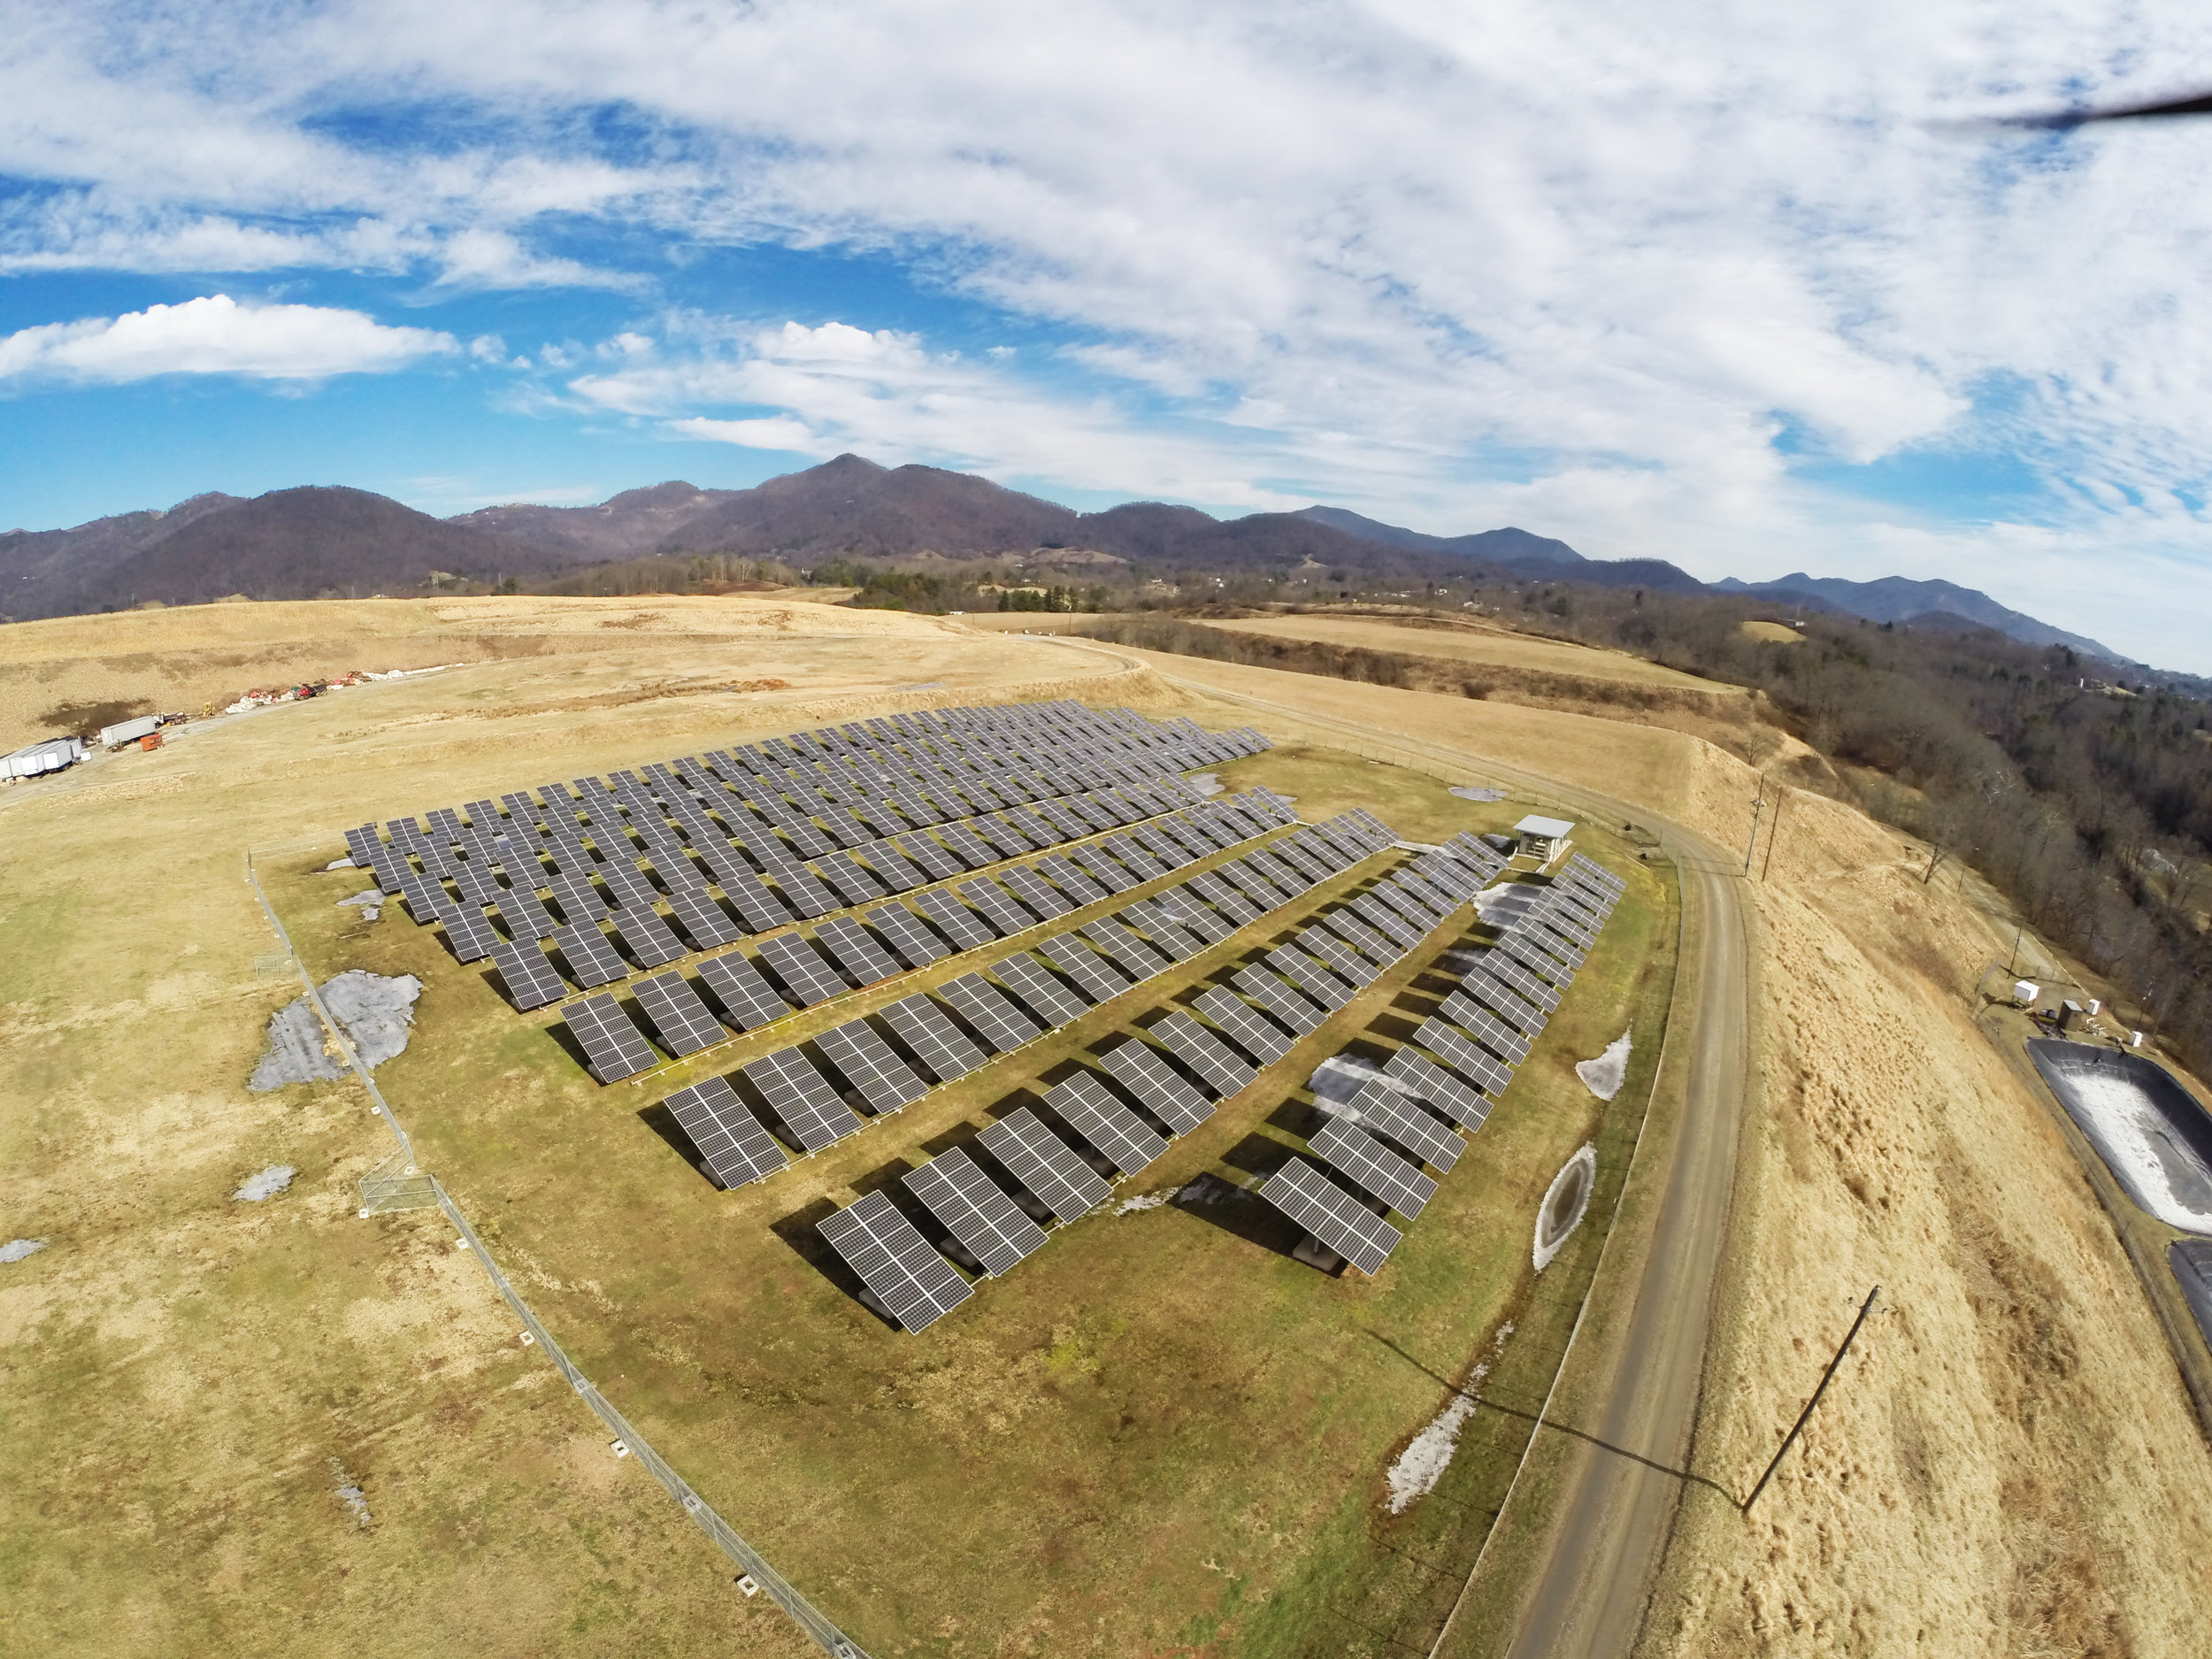 Canton Solar Farm - Riverside Solar's founder Brownie Newman helped develop and finance the first solar farm in Western North Carolina. The 500 kW system was constructed in 2009 on a retired landfill in Canton, North Carolina.photo courtesy of FLS Energy